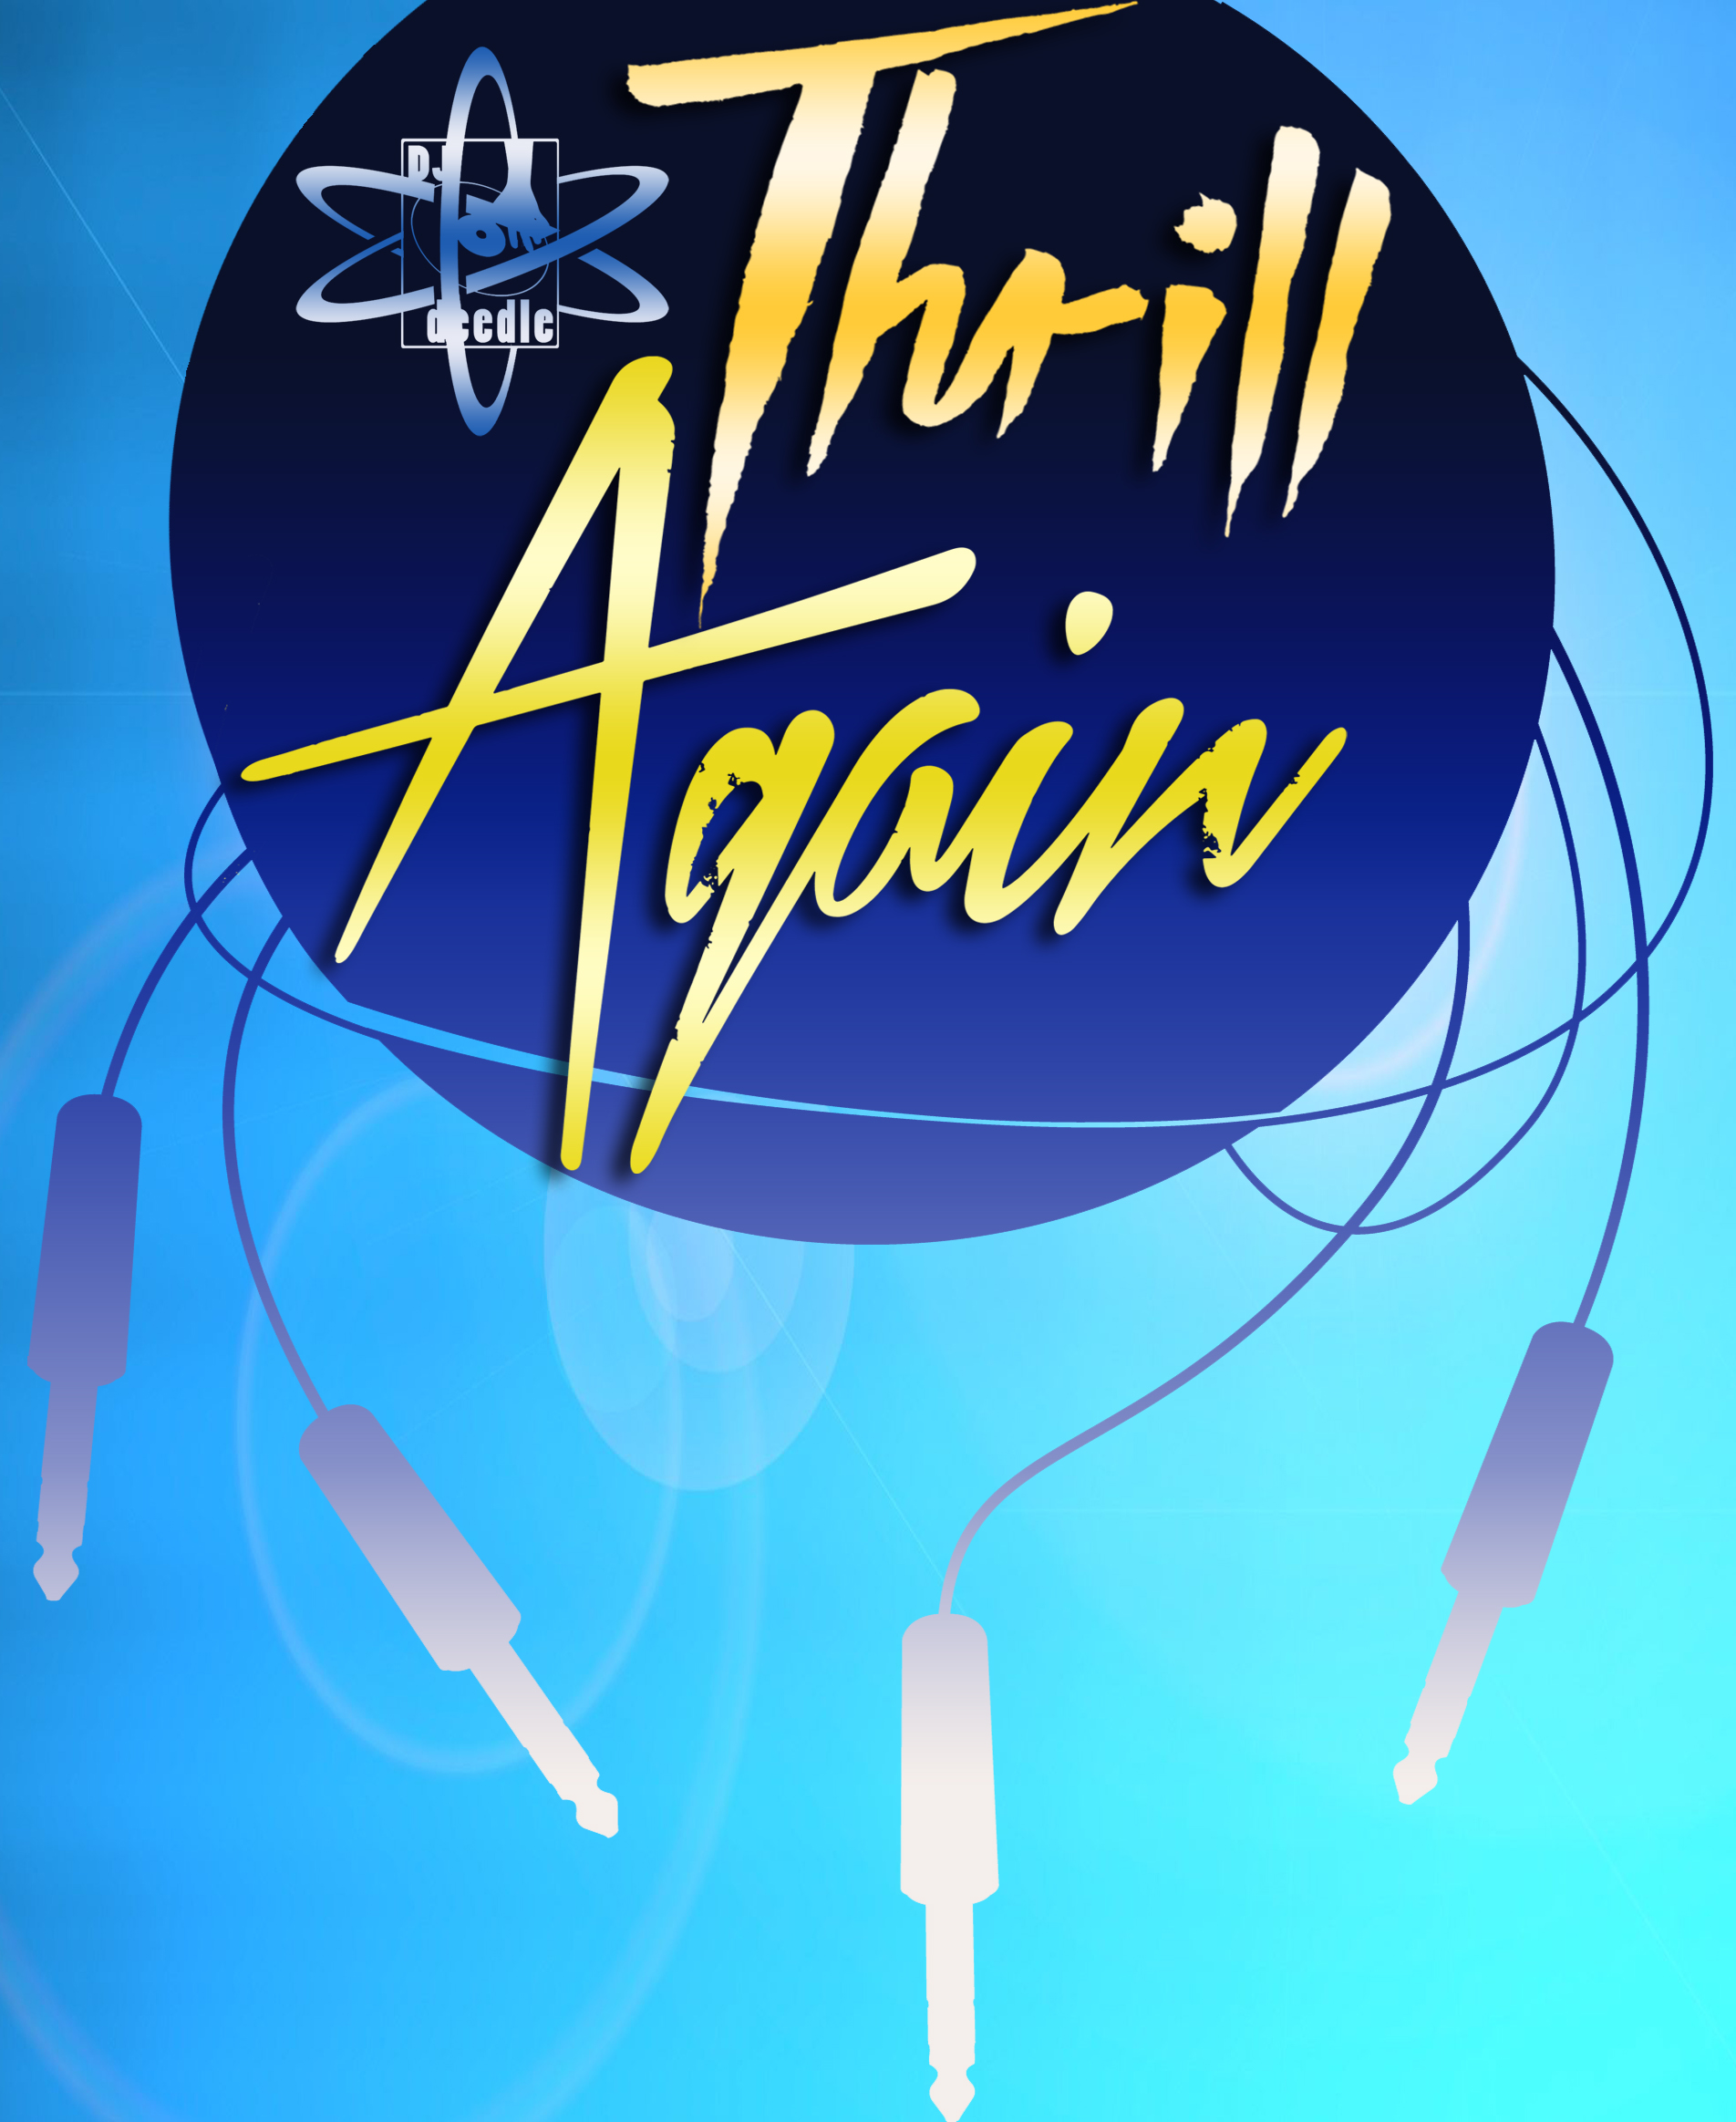 Thrill Again Art